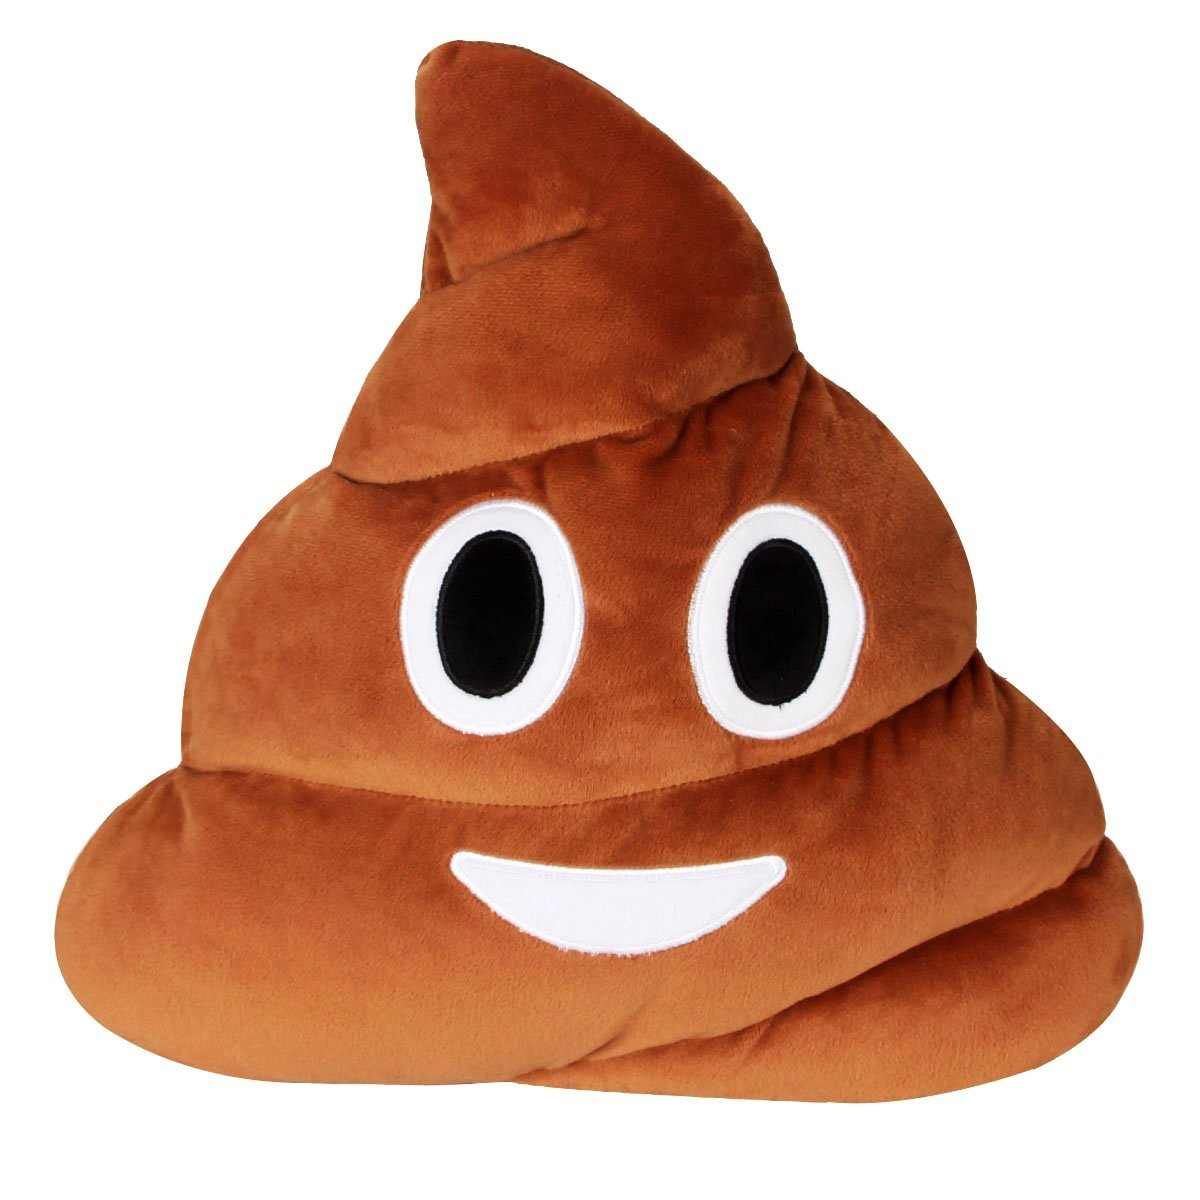 Poop Emoji Pillow Cushion Plush Stuffed Soft Pillow Gifts for Kids and Adults Dreampark